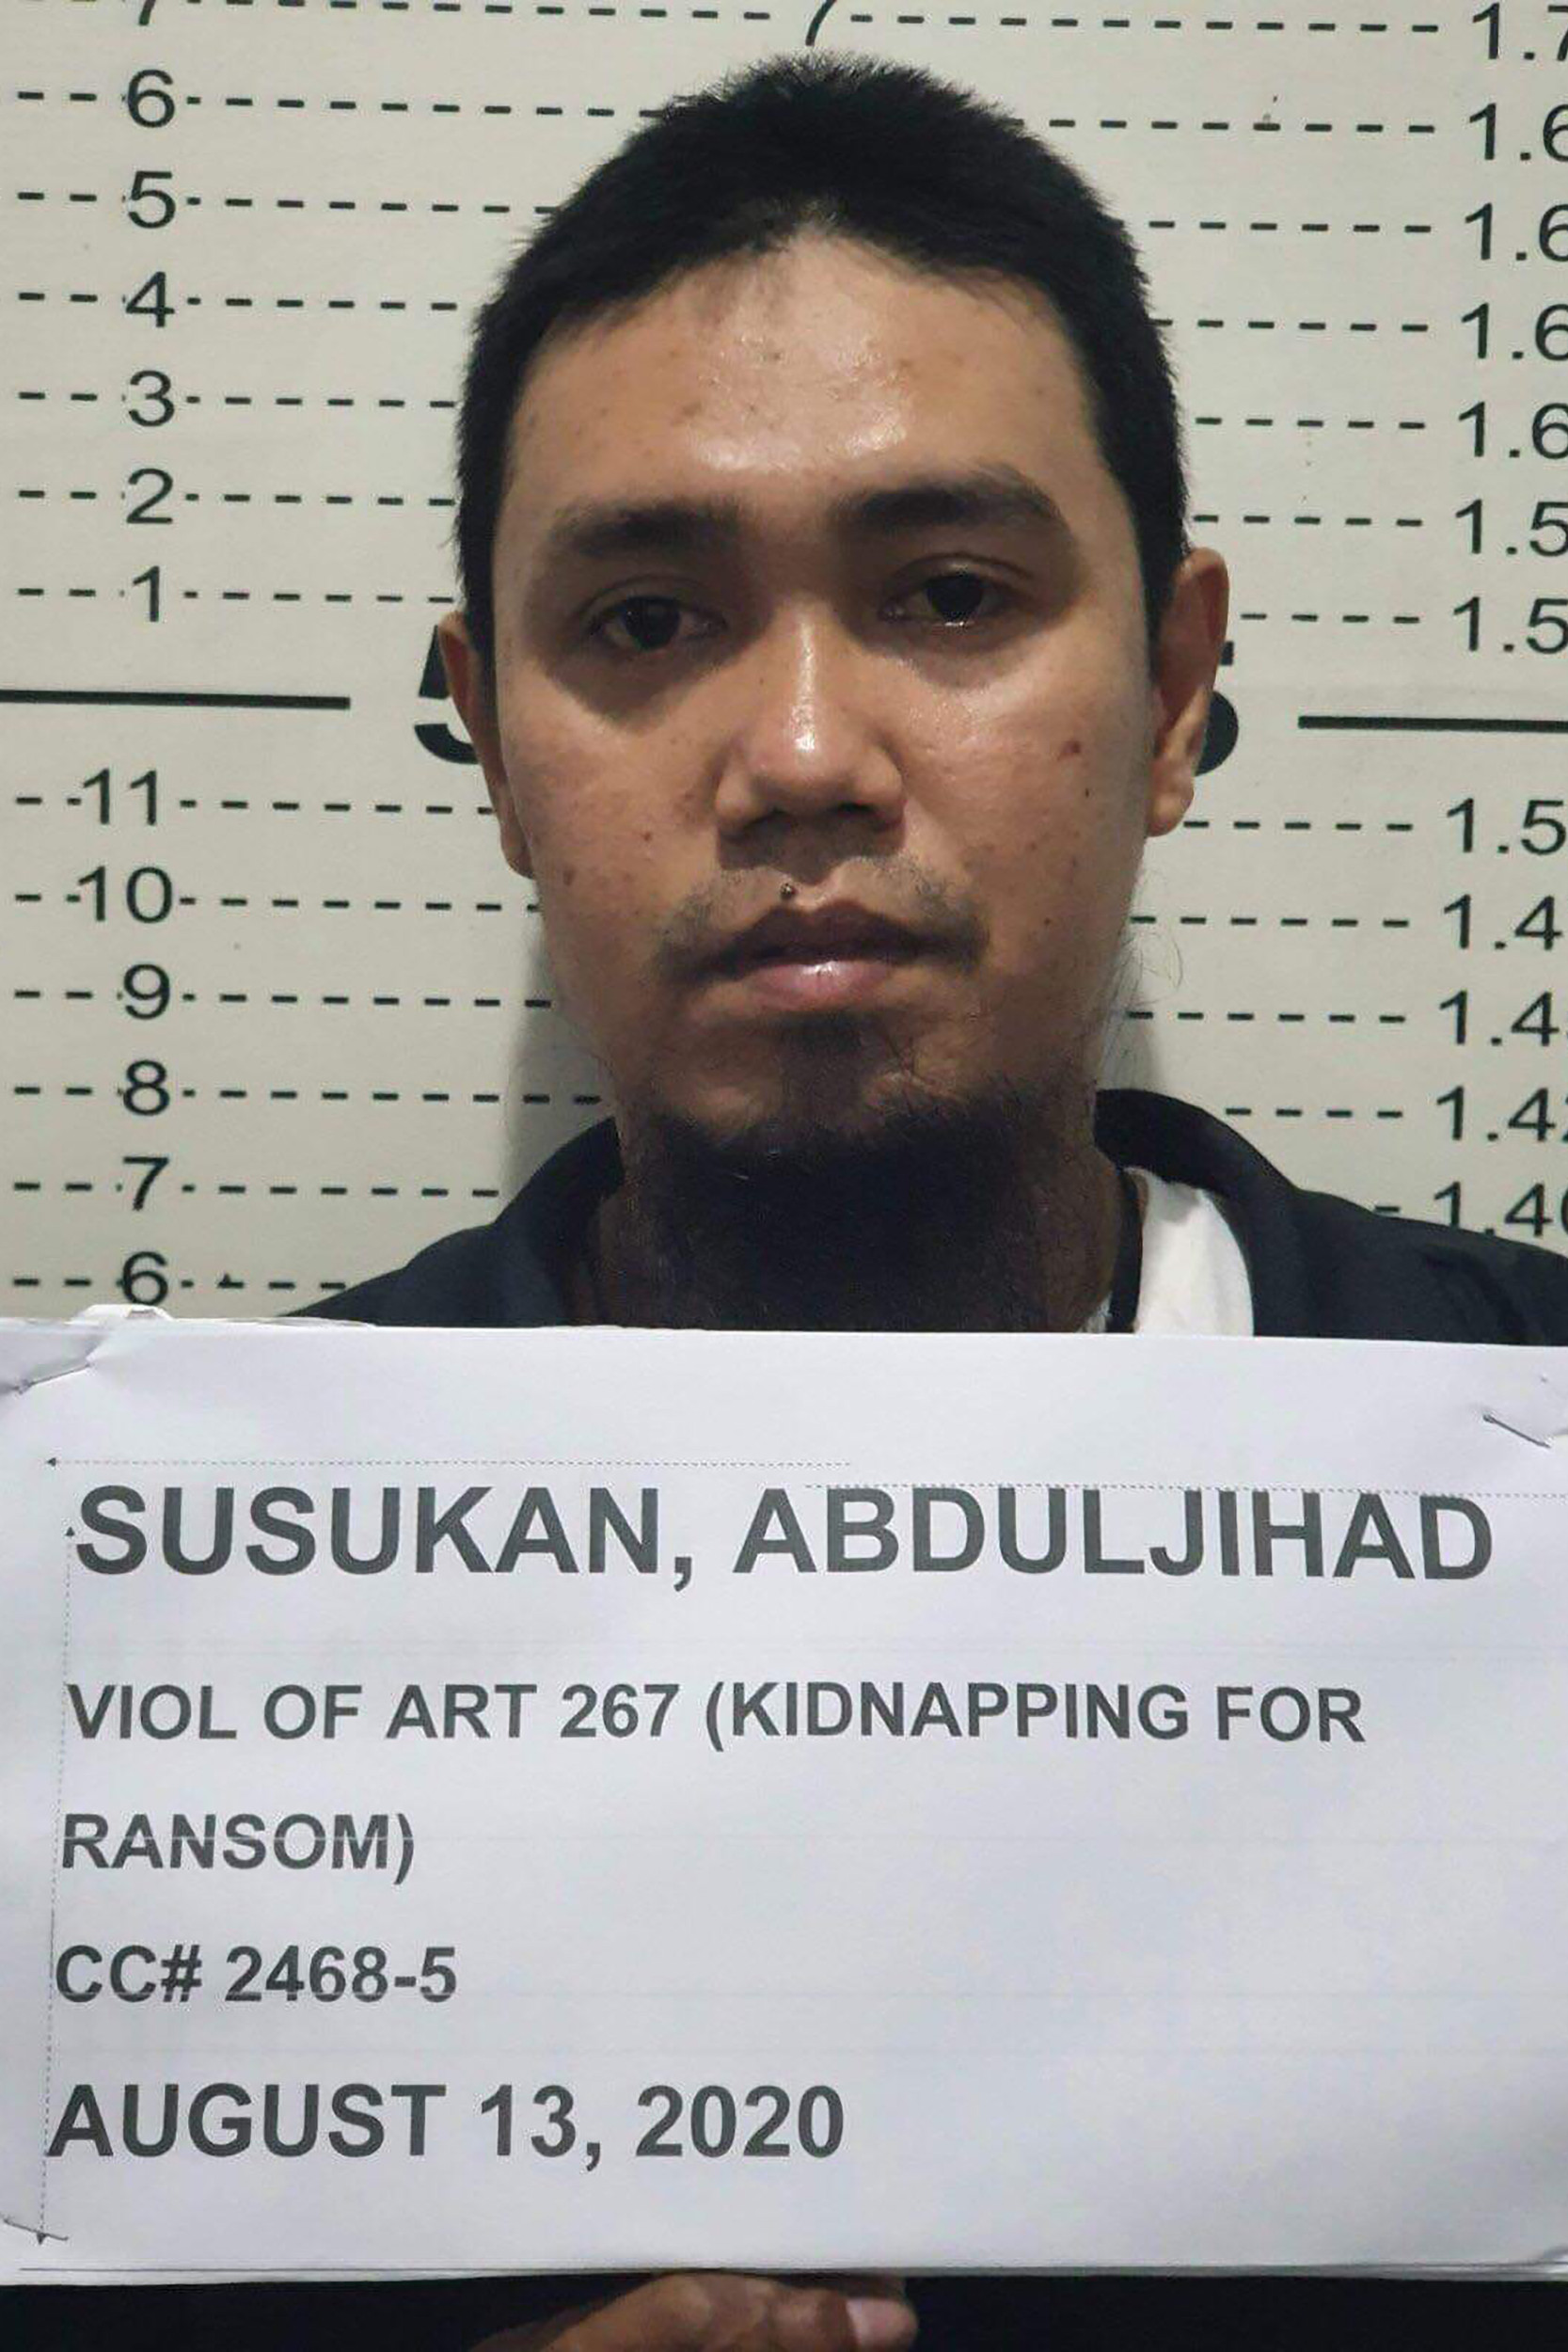 Top militant linked to beheadings surrenders in Philippines